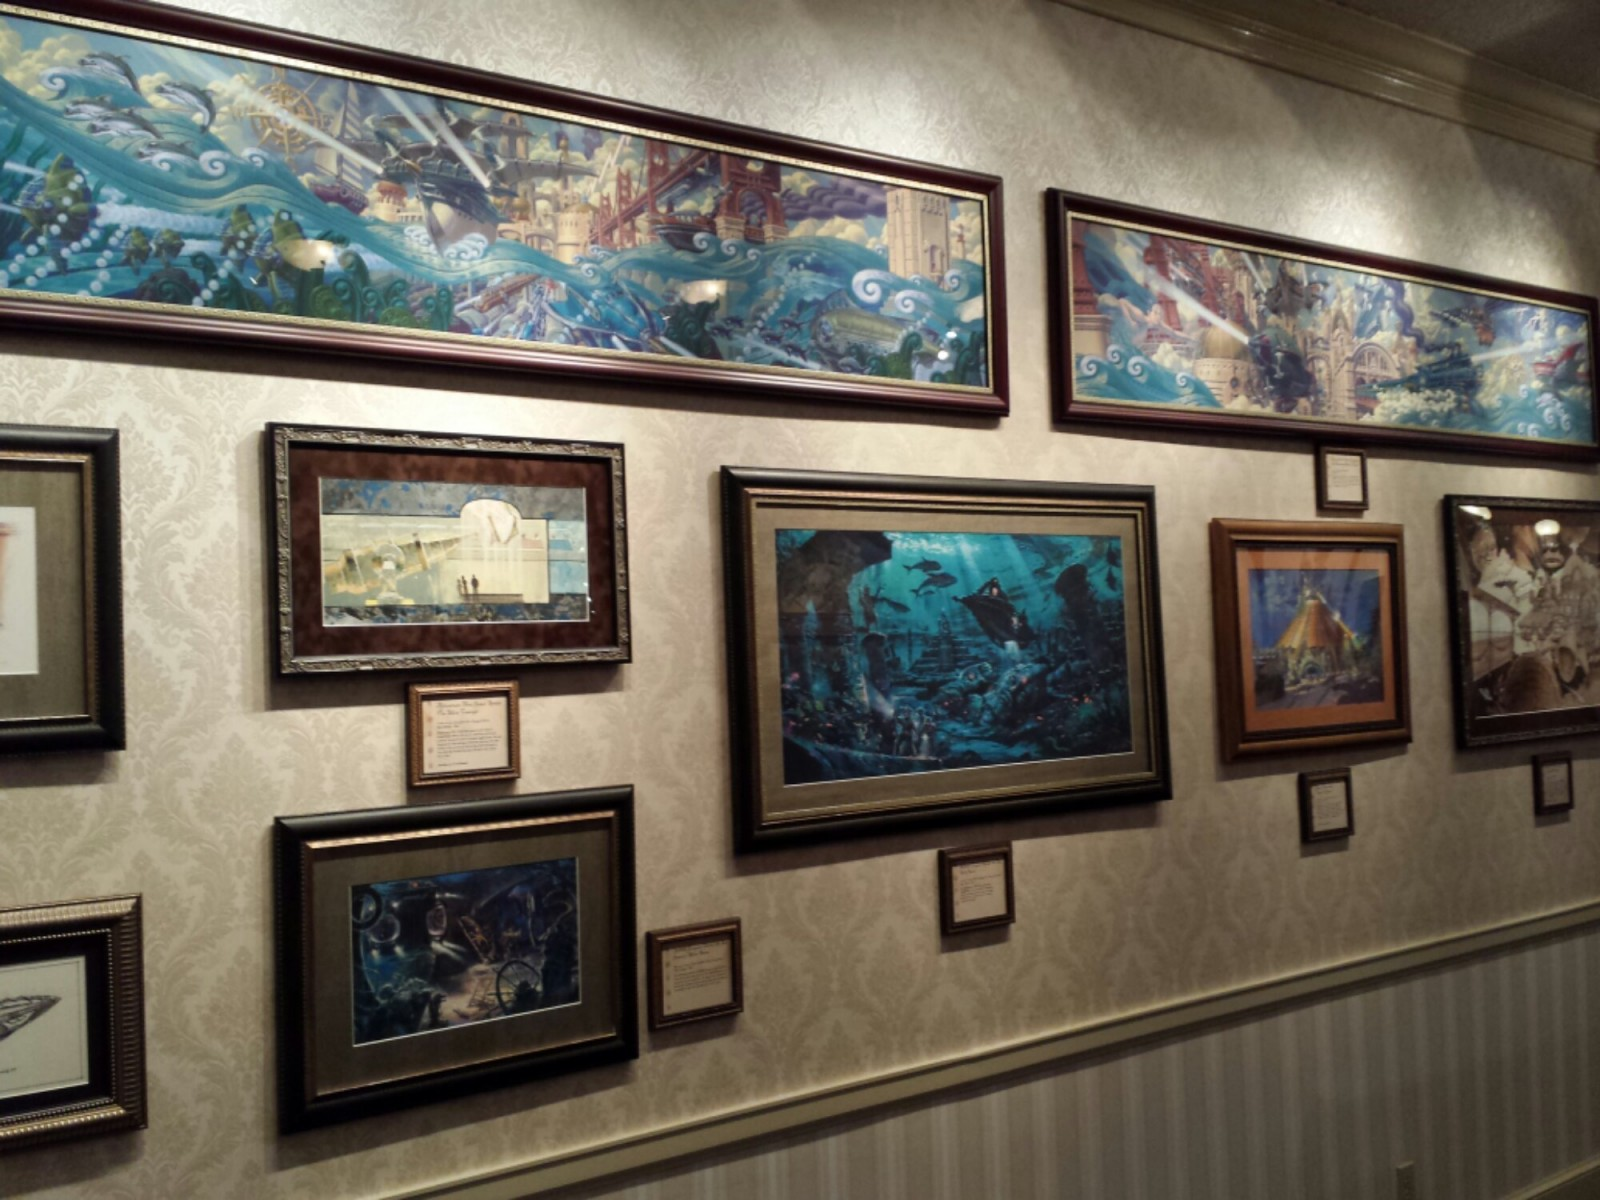 Stopped by the Mechanical Kingdoms exhibit in the Disney Gallery on Main Street